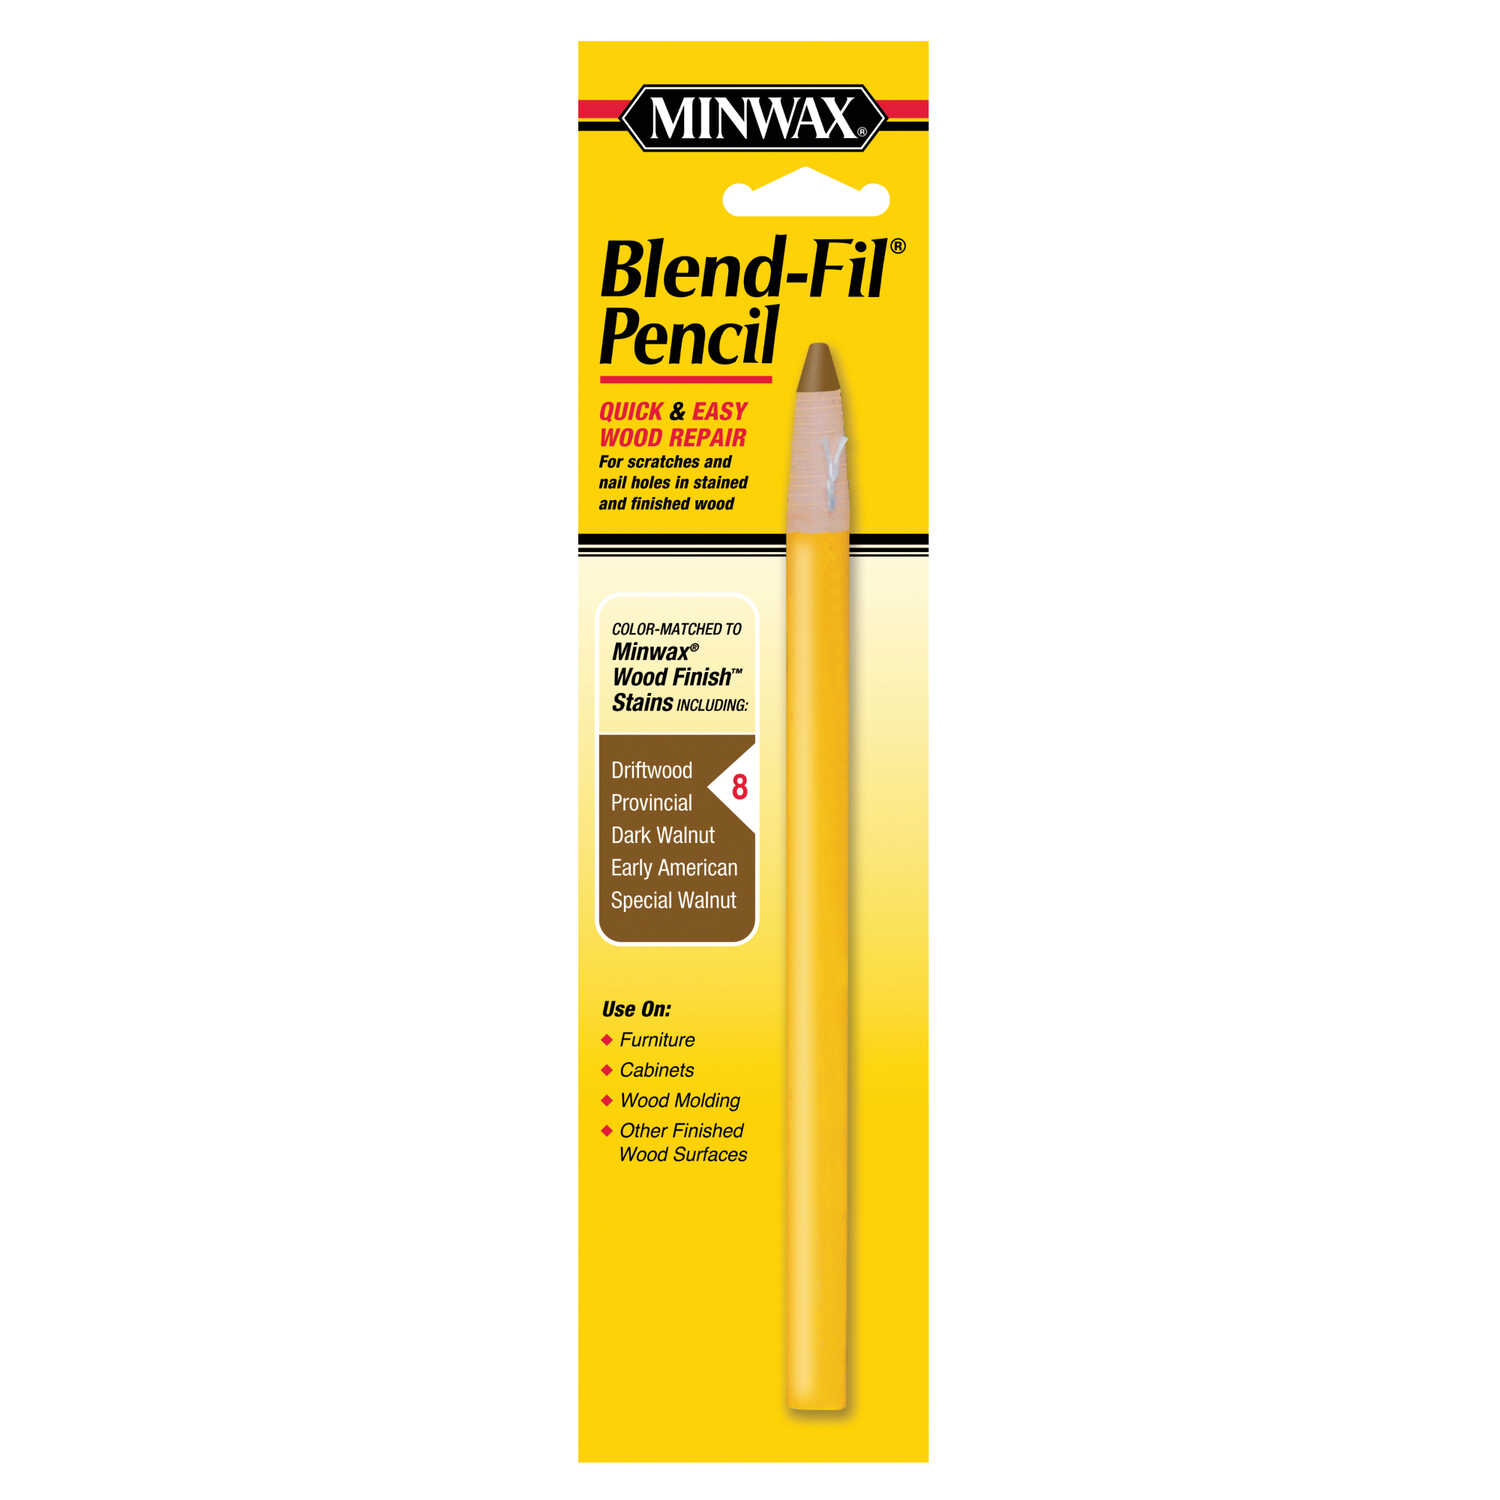 Minwax  Blend Fil No. 8  Wood Pencil  1 oz. Dark Walnut, Driftwood, Early American, Provincial